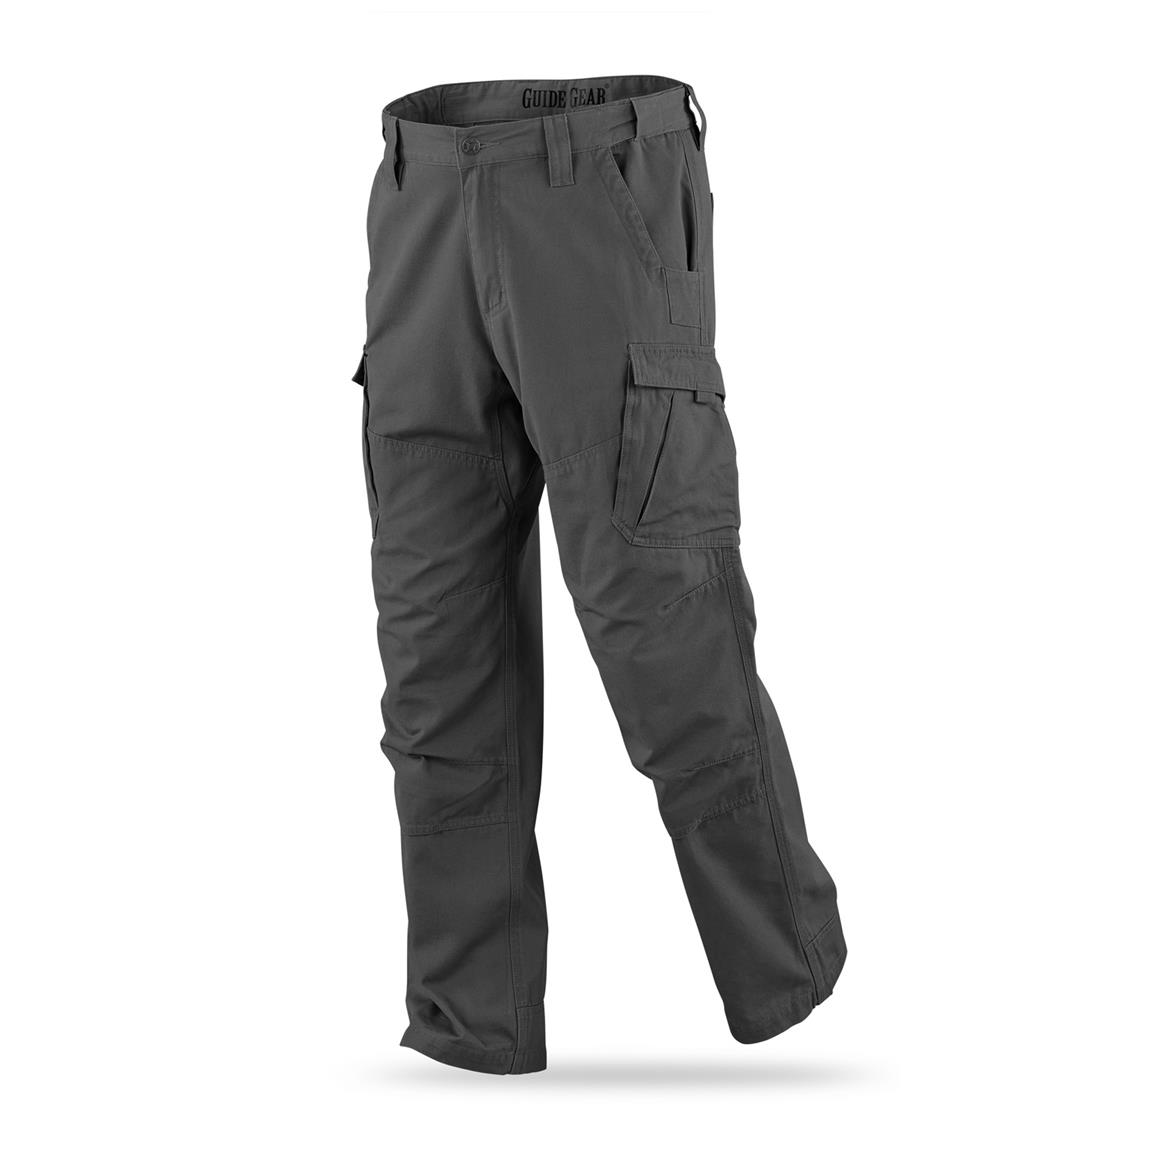 Guide Gear Men's Canvas Work Pants, Graphite Gray